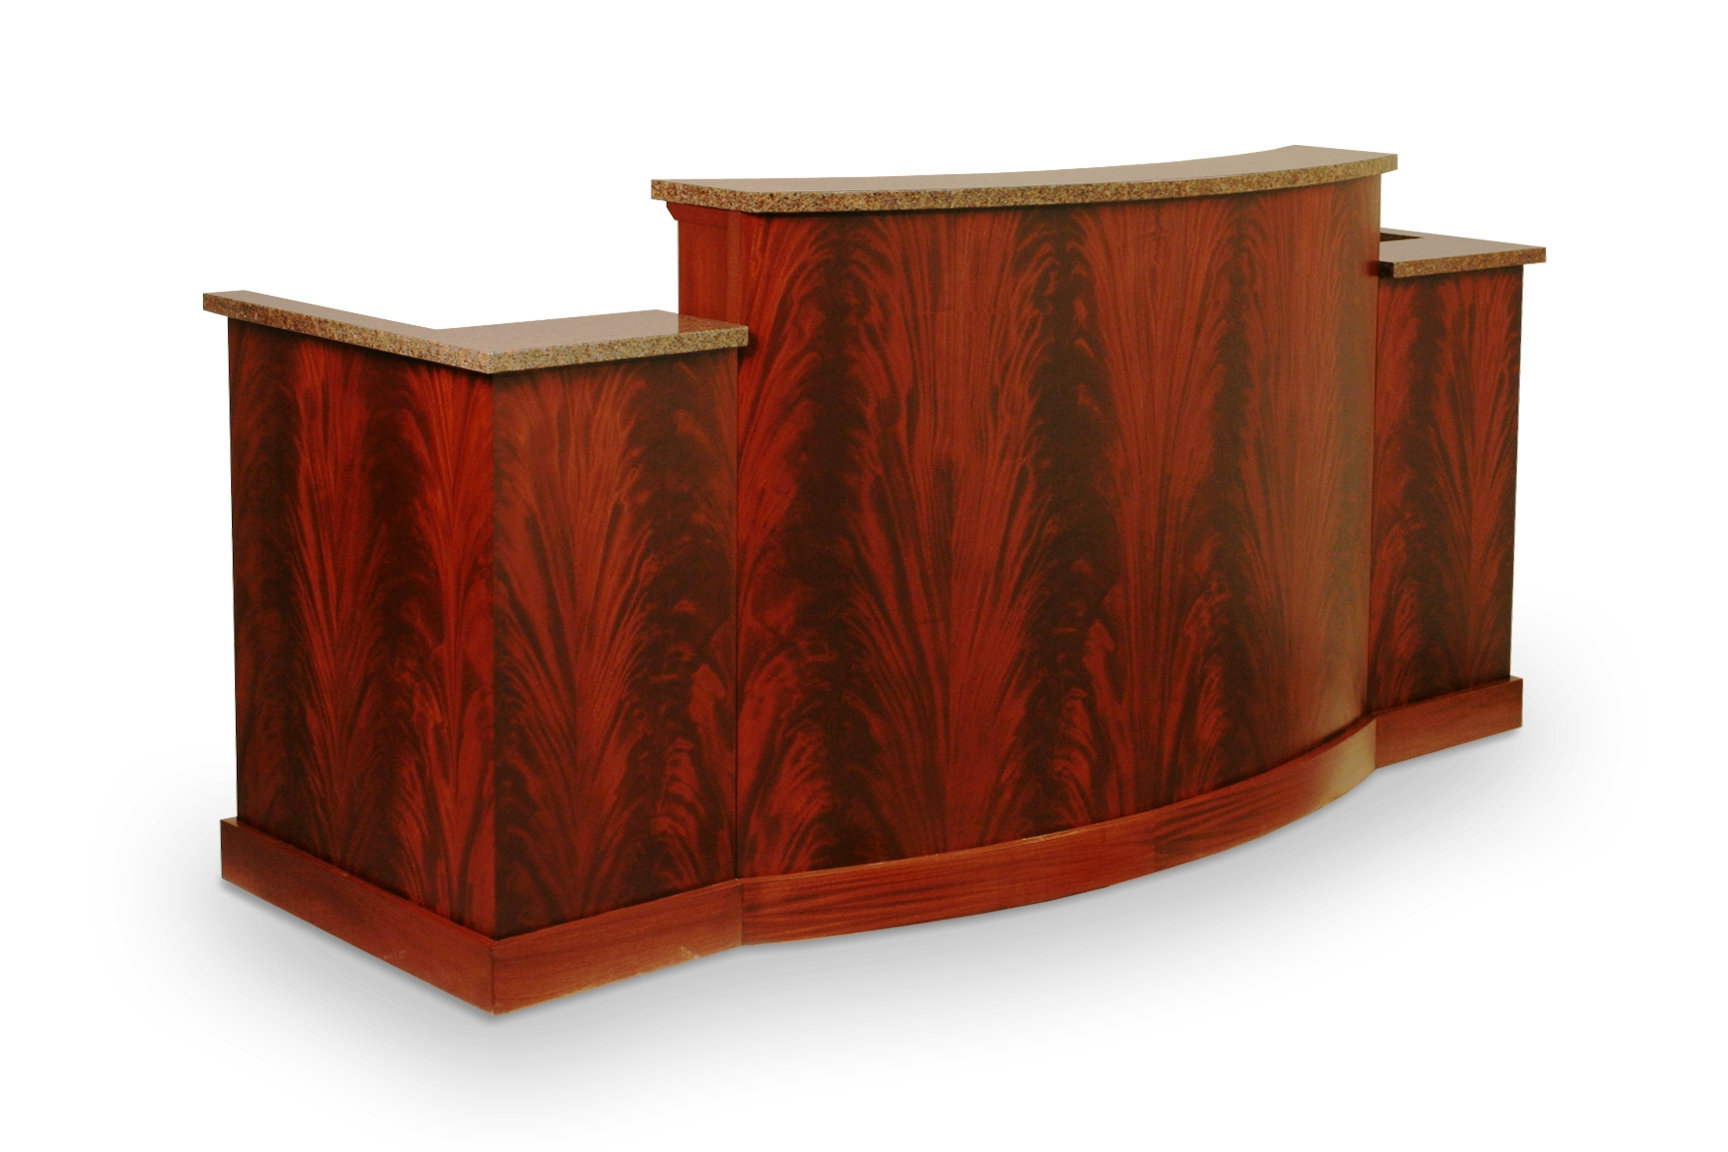 JUDGES DESK IN CROTCH MAHOGANY WOOD: